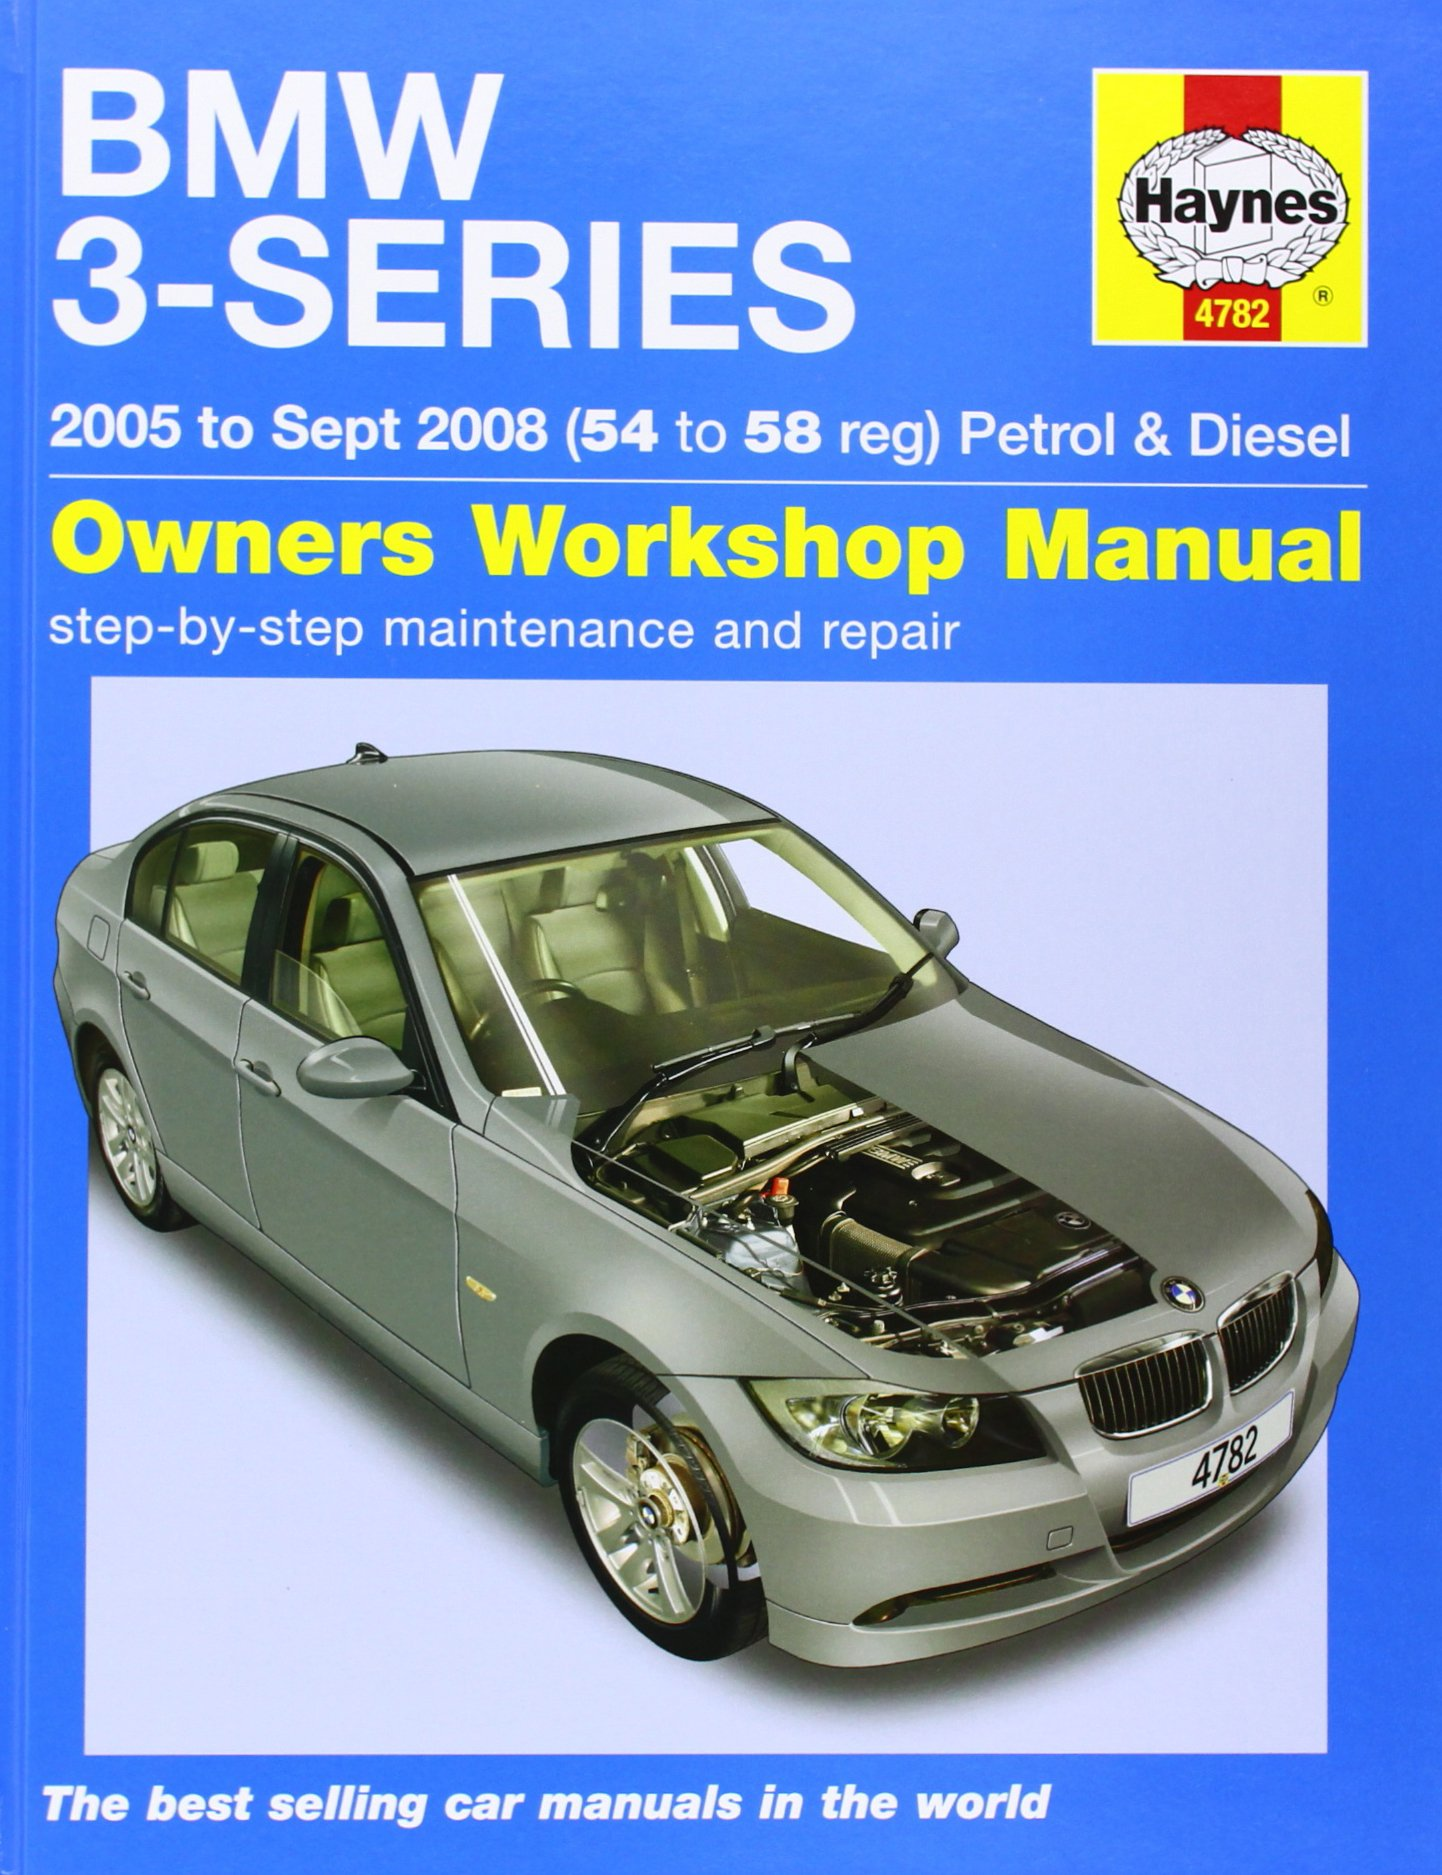 BMW 3-Series Petrol and Diesel Service and Repair Manual: 2005 to 2008 ( Service & repair manuals): Amazon.co.uk: Martynn Randall: 9781844257829:  Books